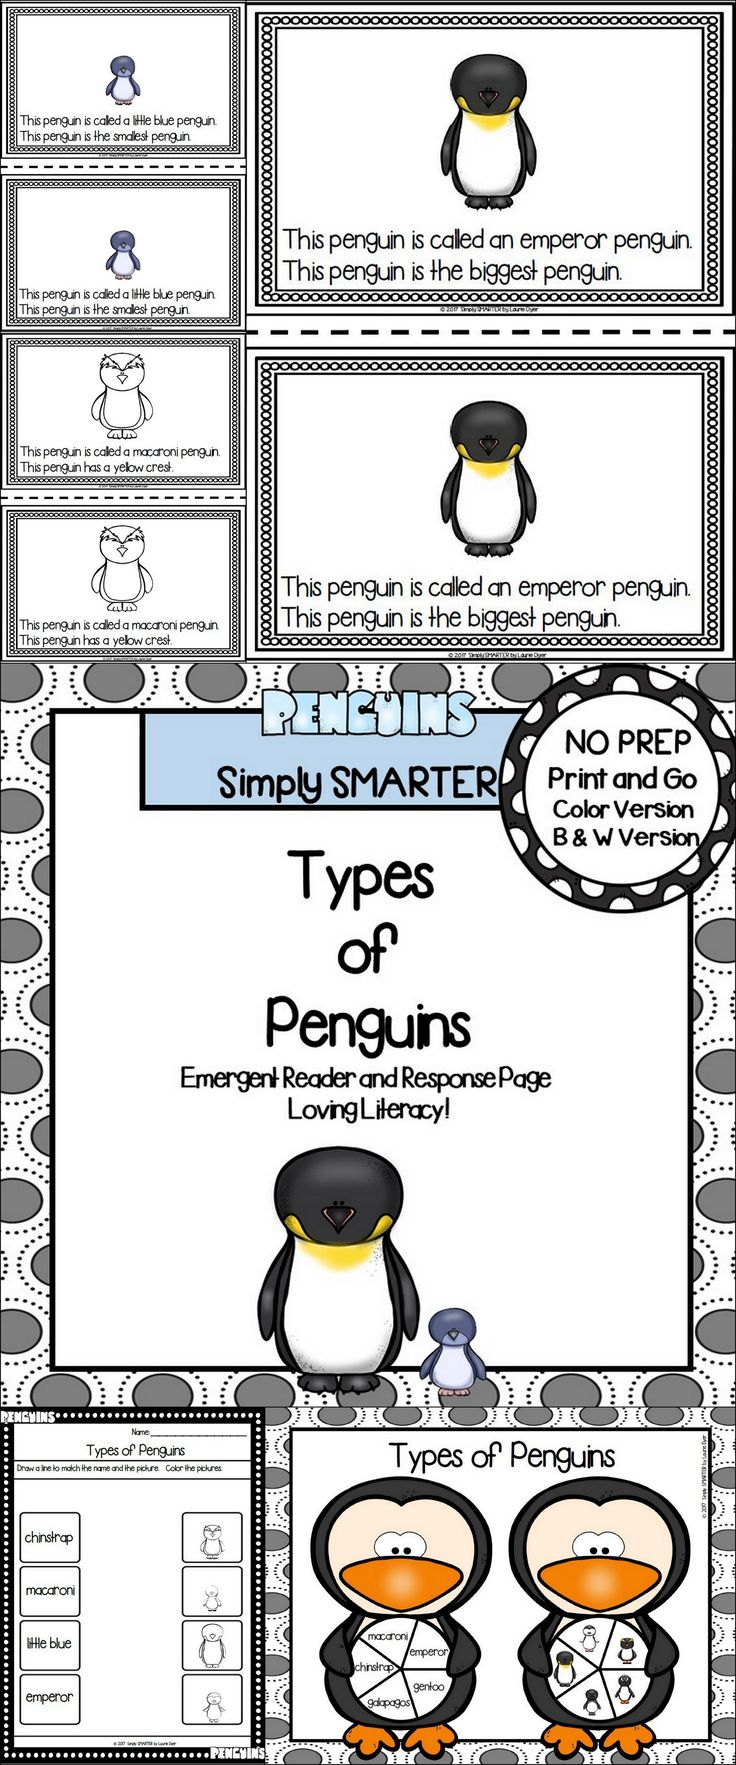 Are you looking for a NO PREP reading activity for preschool, kindergarten, or first grade? Then use these penguin activities for guided reading, shared reading, independent reading, science, or homework. Children can choose a colored version or black and white reader. The reader contains two sentences on each page and informs children about different types of penguins. Children will reinforce what they read by completing the response page and by playing the board game.